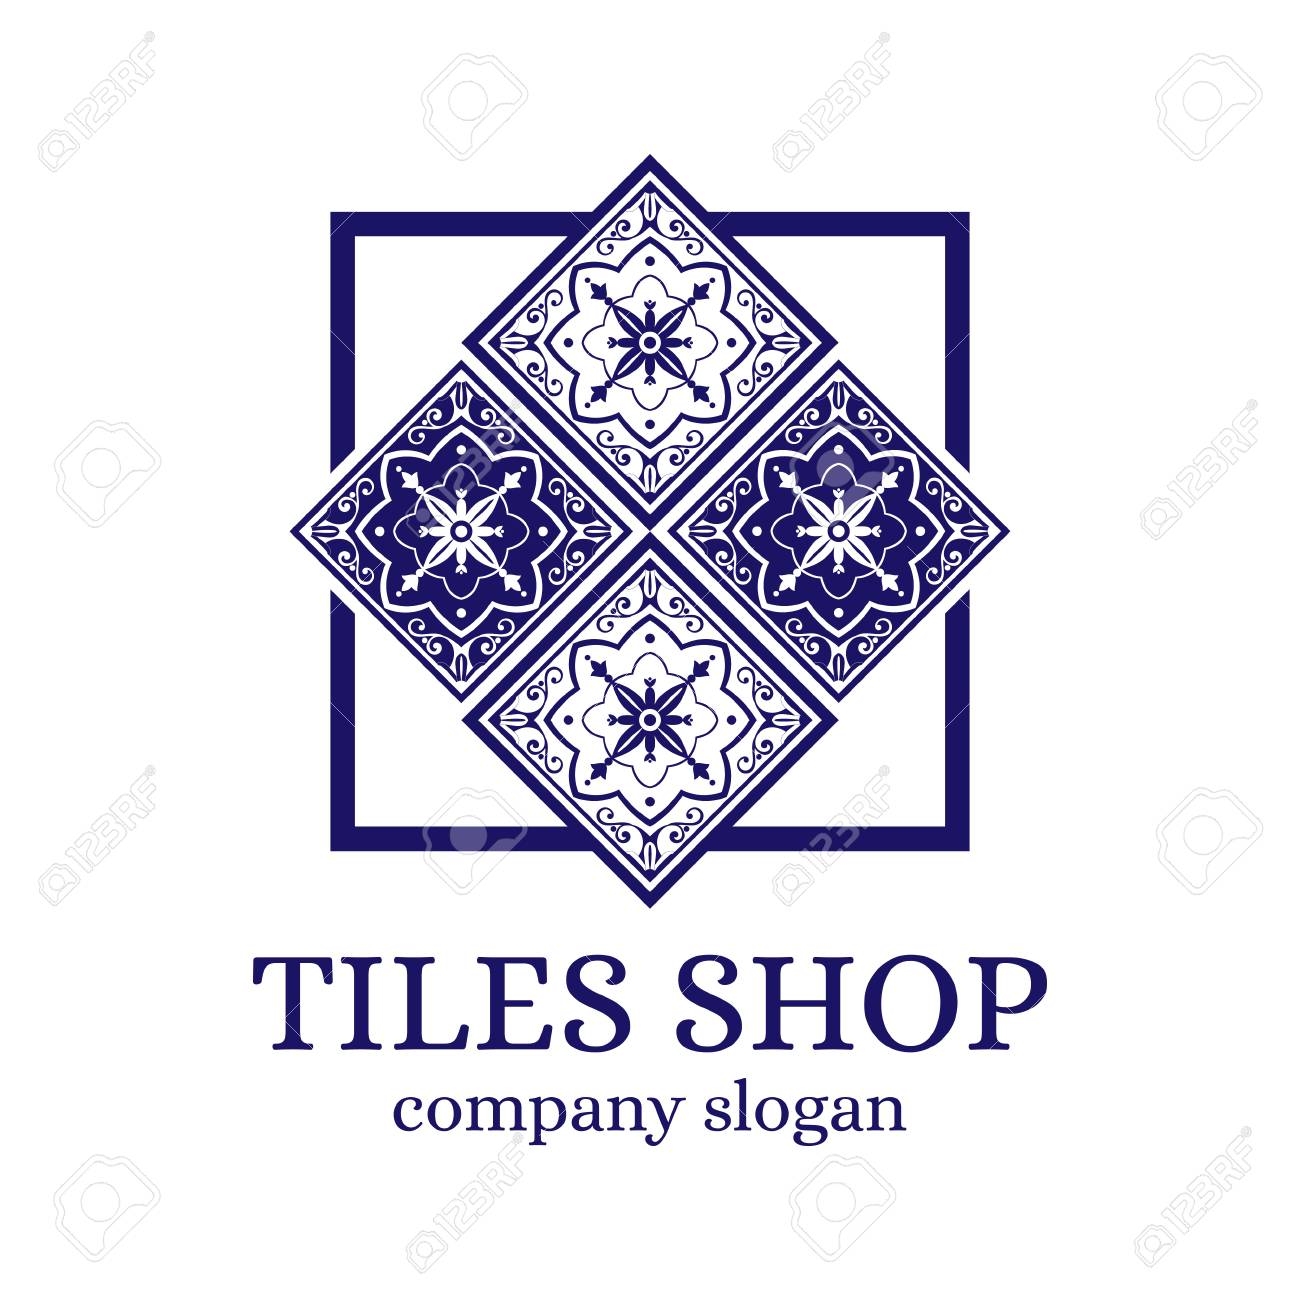 Tiles shop logo template design vector branding identity emblem tiles shop logo template design vector branding identity emblem with delft mosaic ornament for dutch dailygadgetfo Image collections